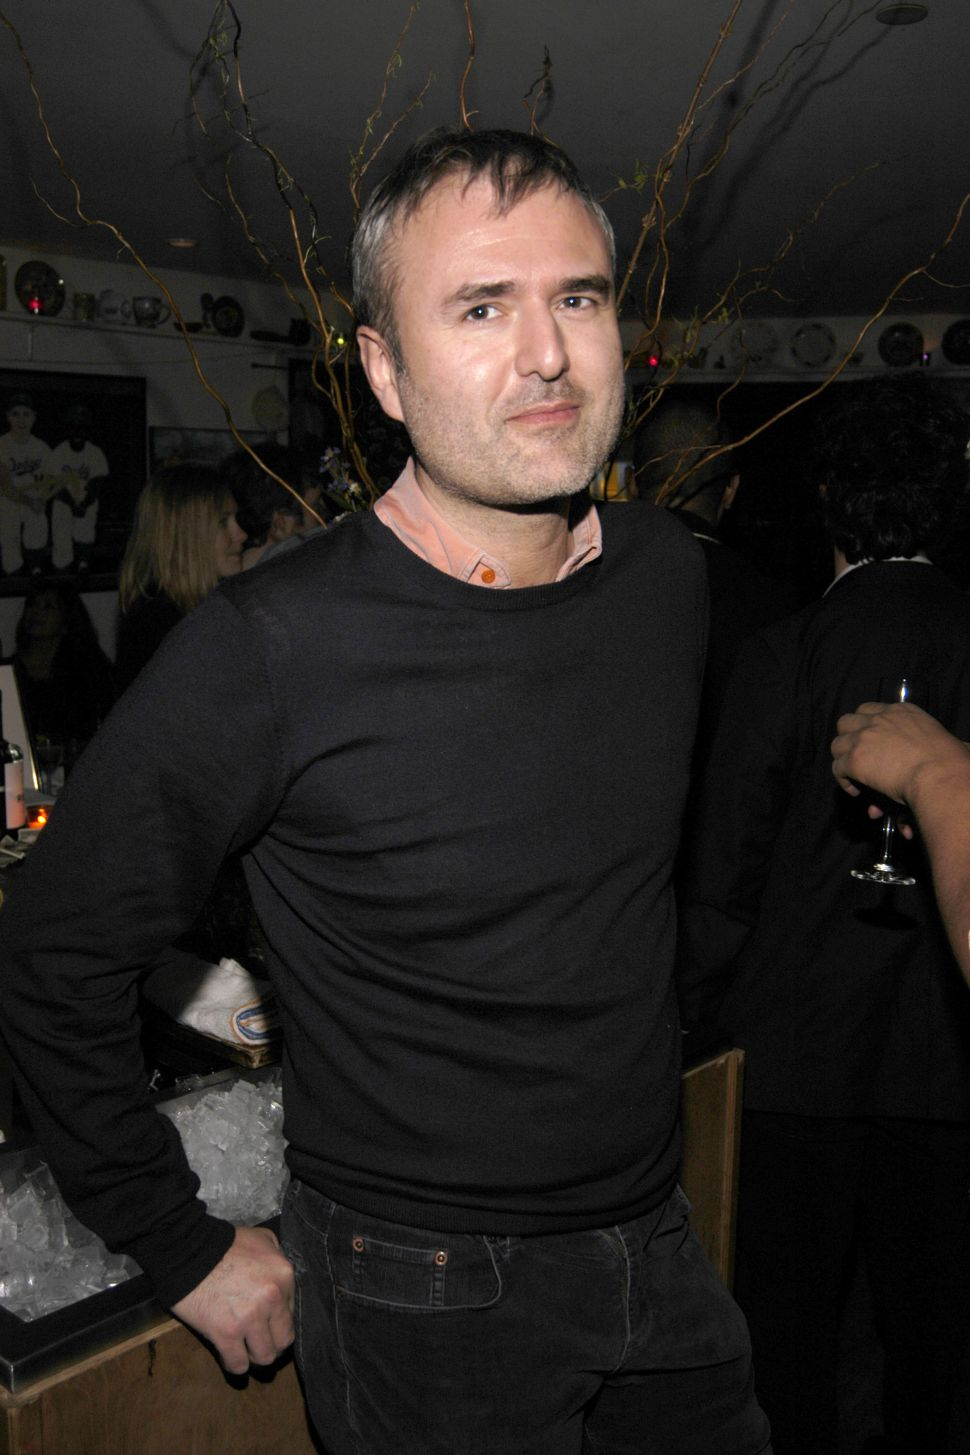 Nick Denton's 'State of Gawker 2012' Memo: 'Relentless and cynical traffic-trawling is bad for the soul.'